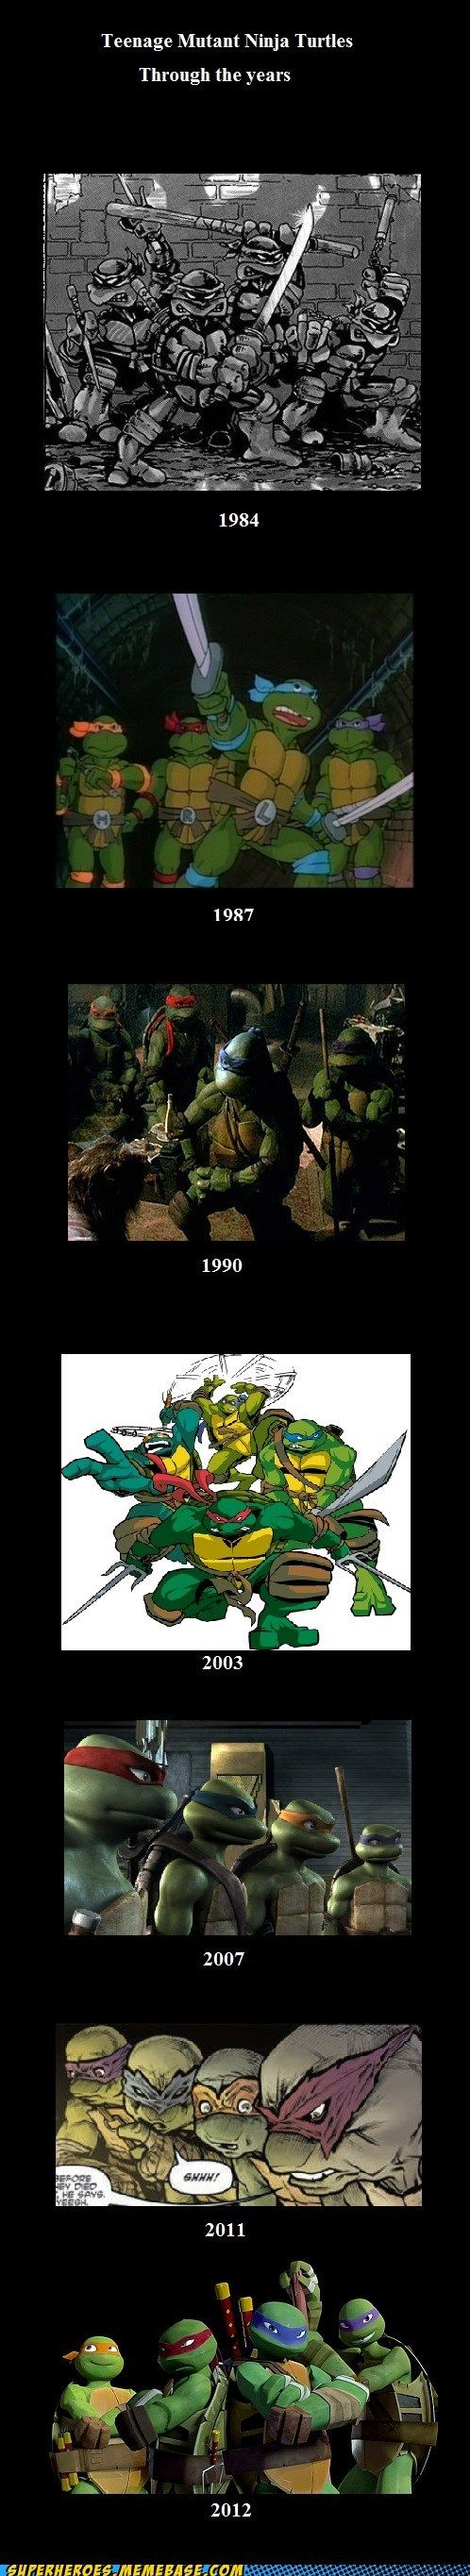 Teenage Mutant Ninja Turtles--haven't read the comics, but I've seen all the movies and all the cartoon series!